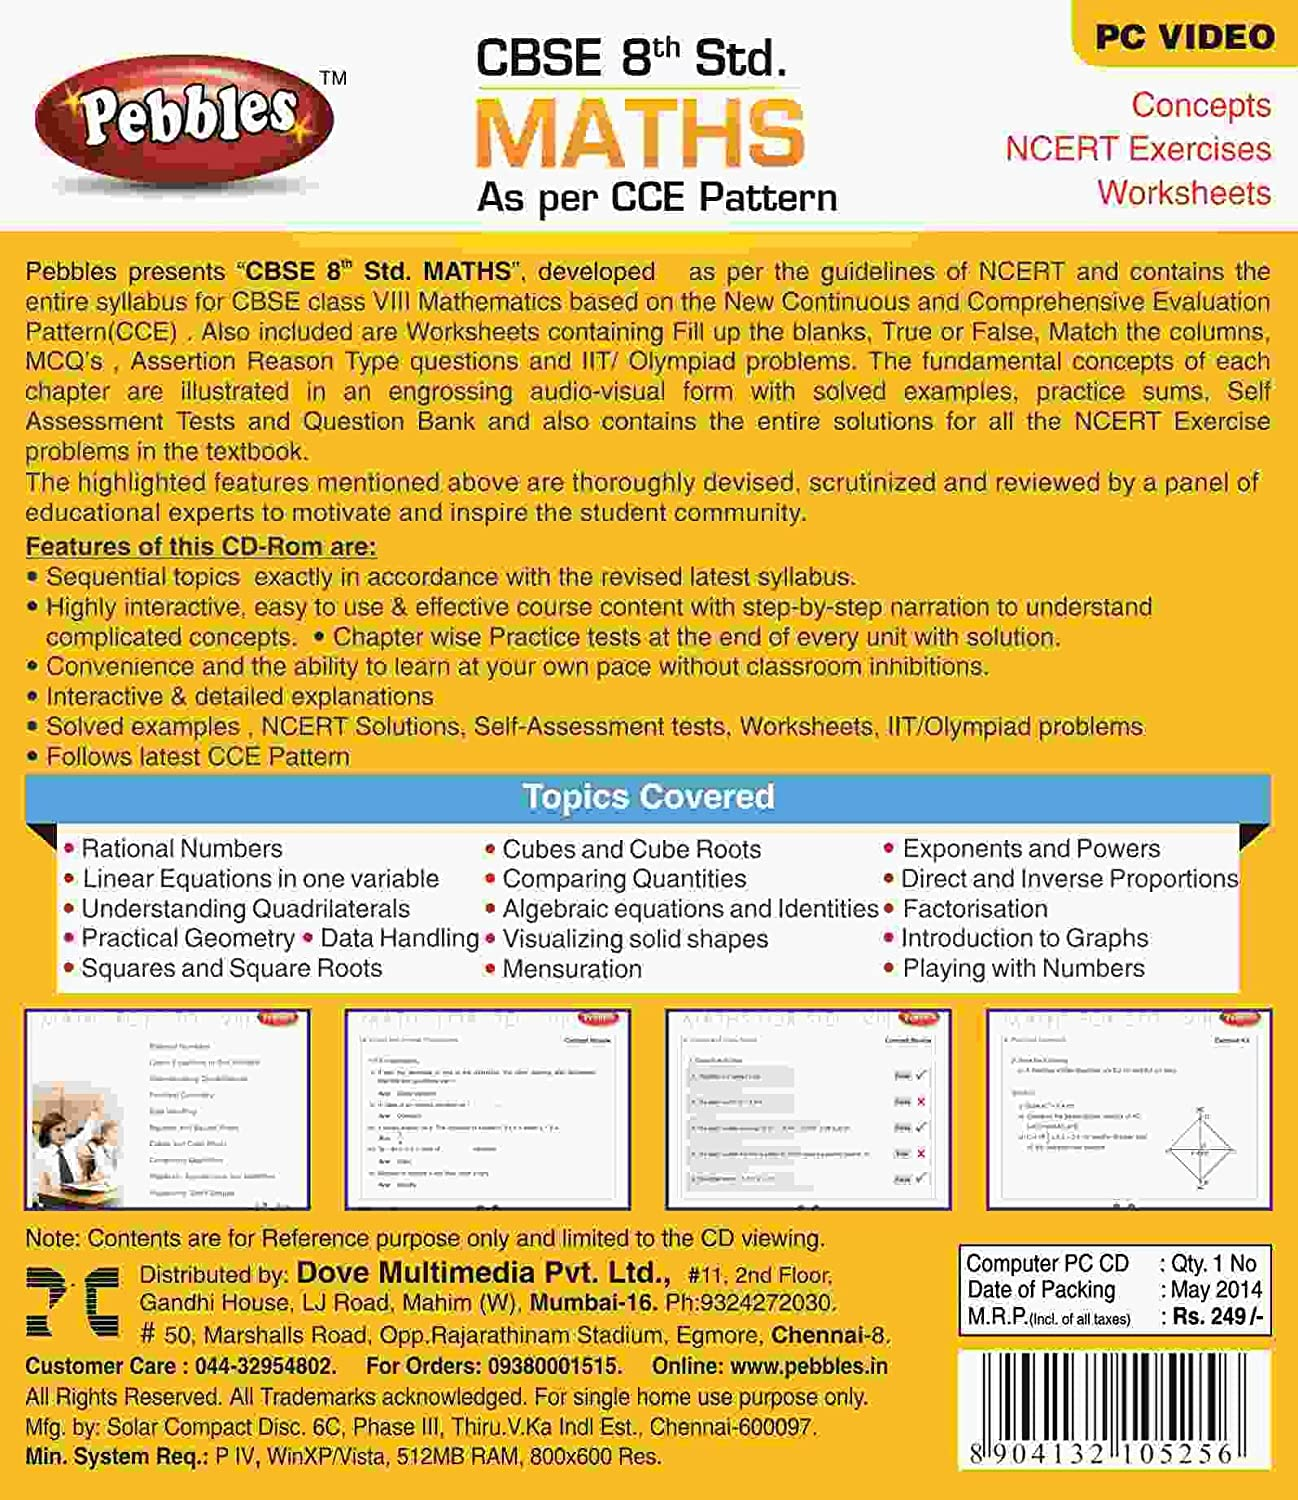 cbse final exam maths 6th standard